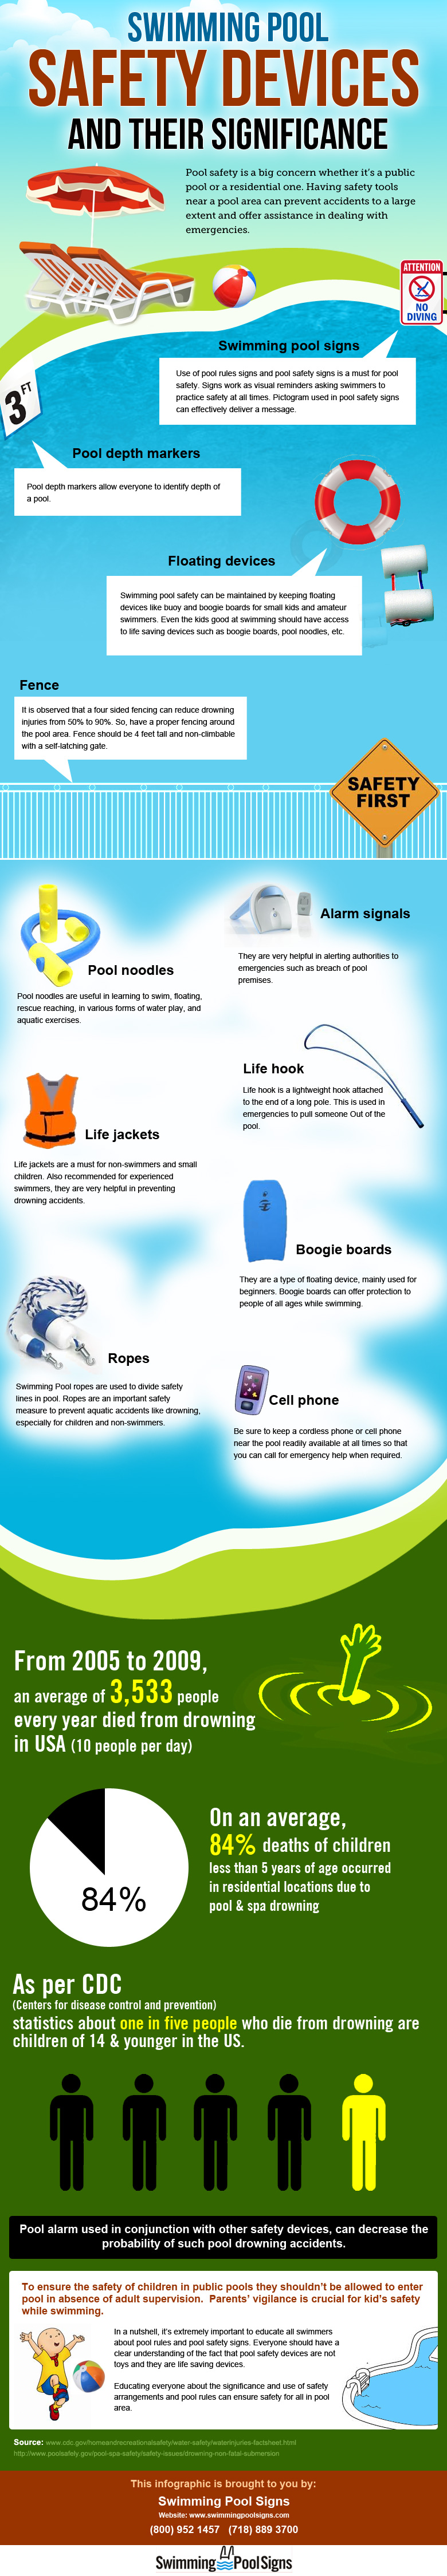 Basic safety equipment and smart pool rules keep your family safe